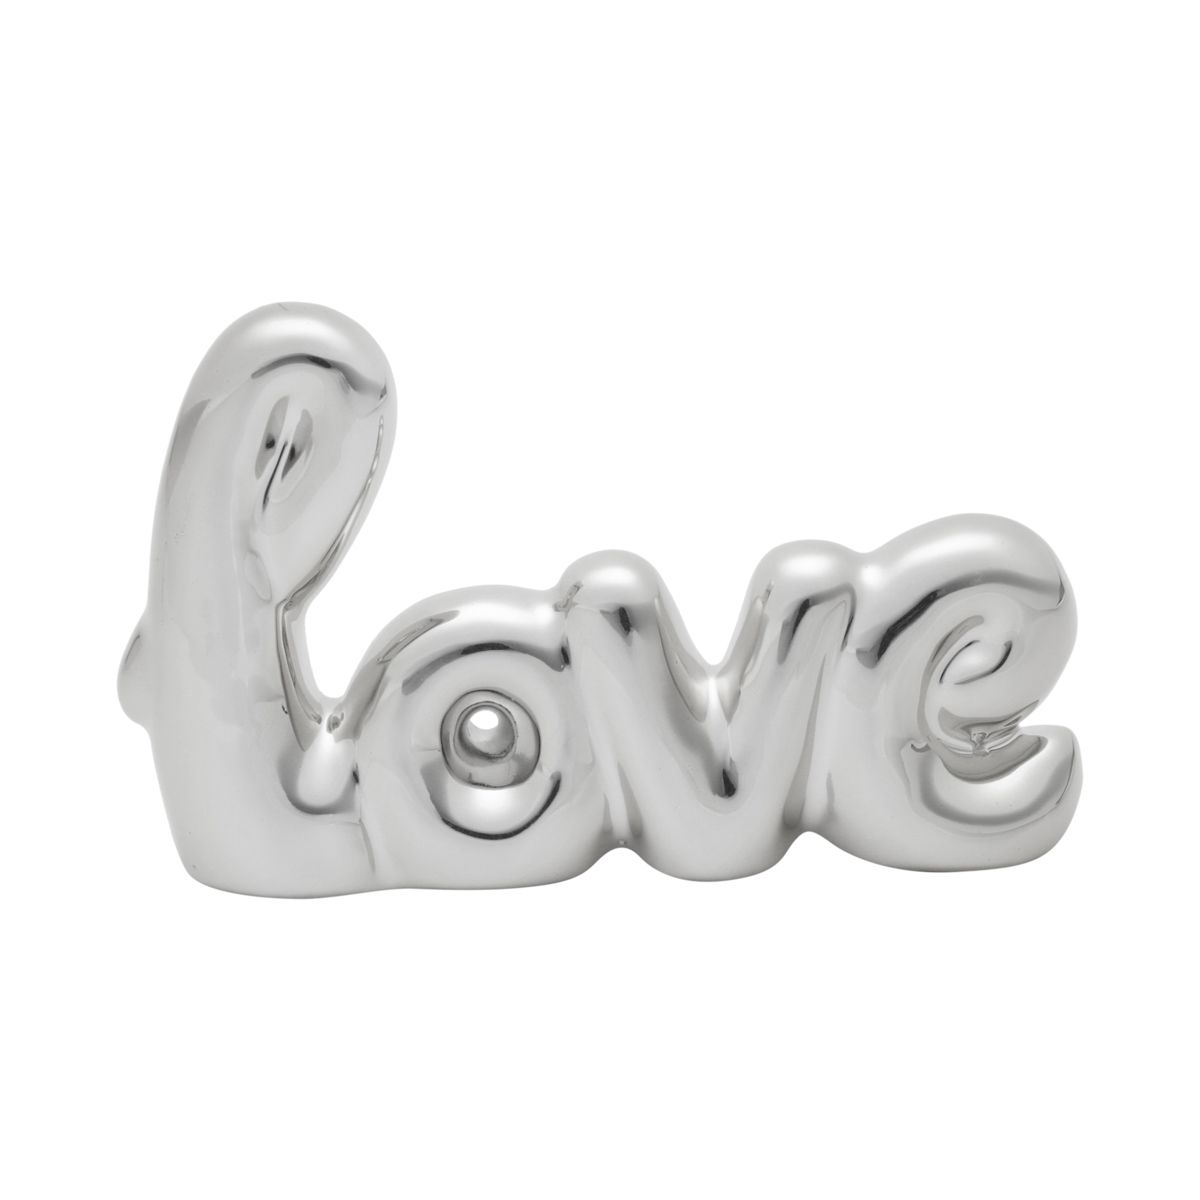 LETRAS DECORATIVAS CERÂMICA LOVE HANDWRITING PRATA 12,5X1,5X8 CM - URBAN 42846